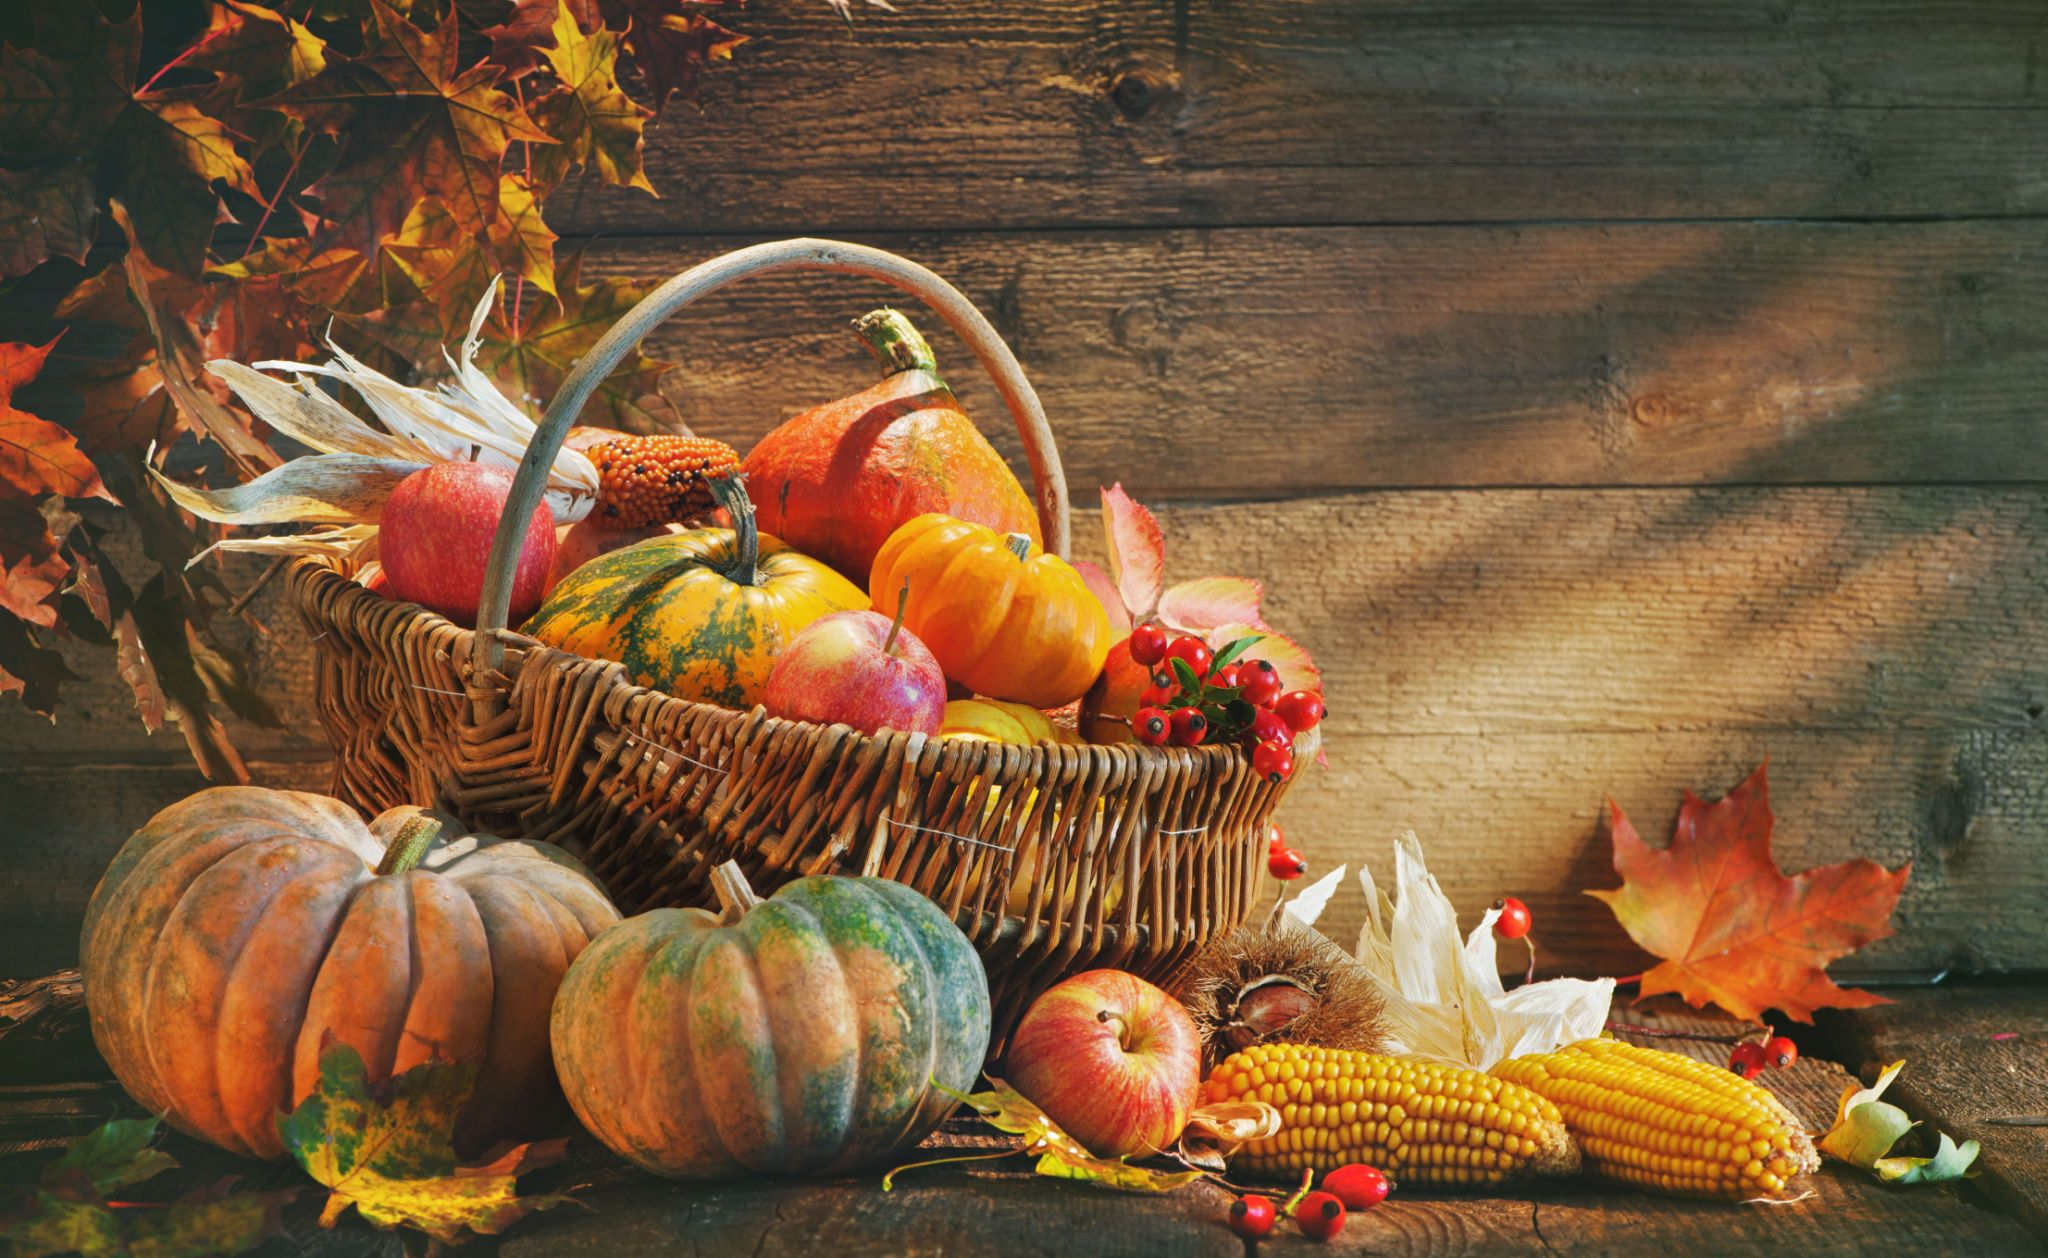 1000+ Happy Thanksgiving Image & Pictures HD [2020]